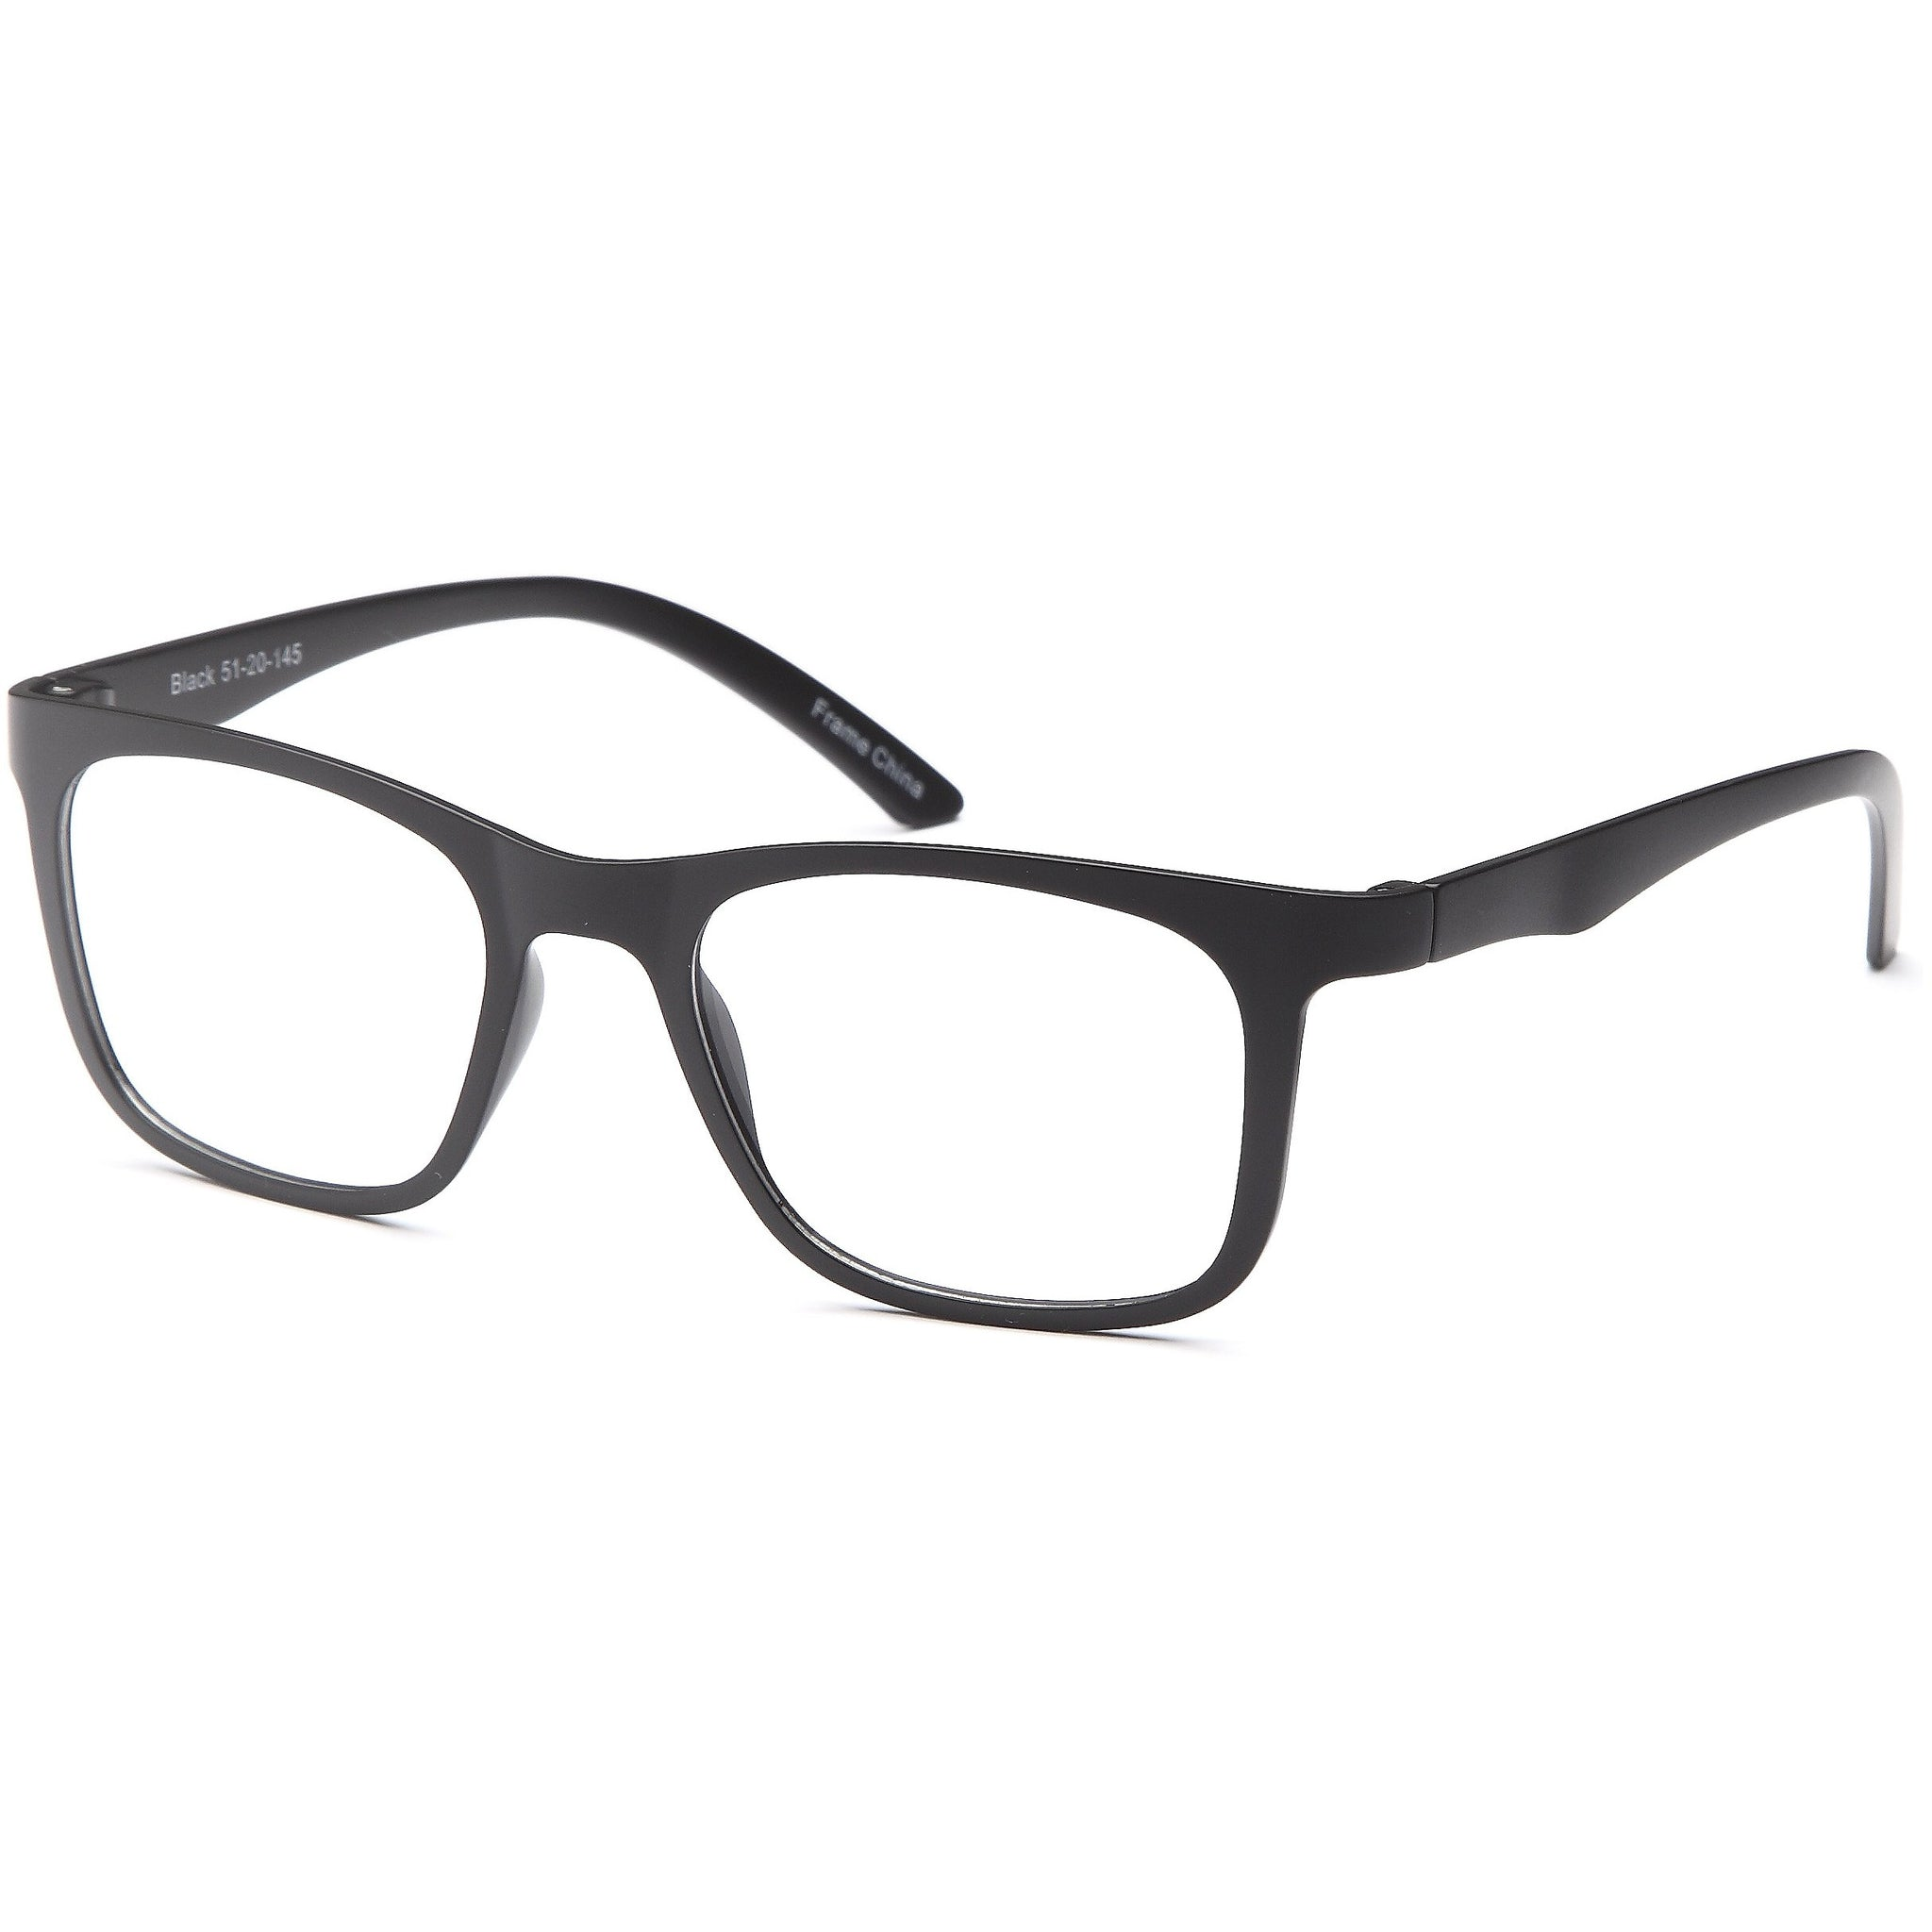 The Icons Prescription Glasses SPLIT B Eyeglasses Frame